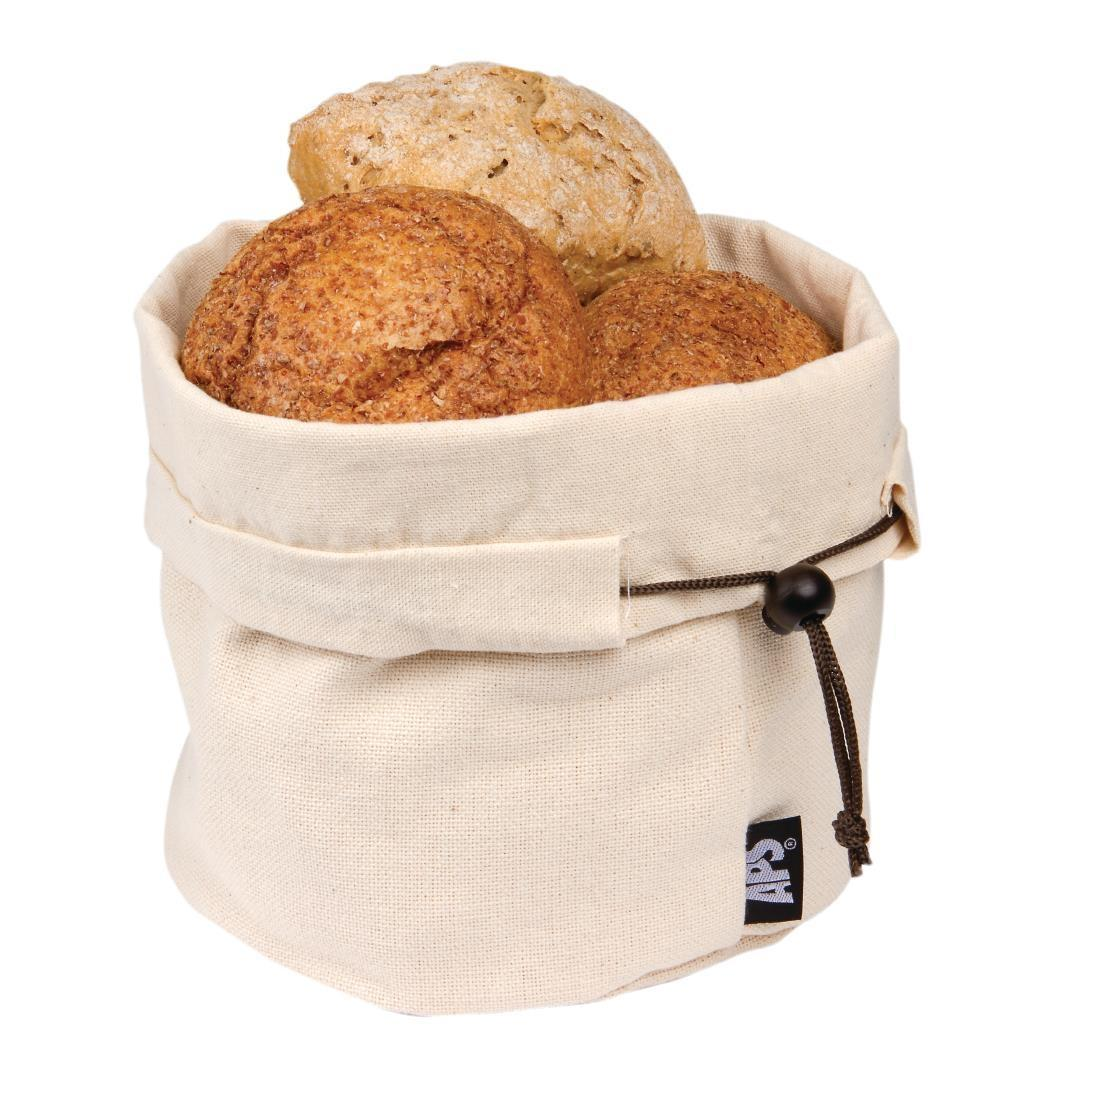 APS Beige Bread Basket - Each - GH391